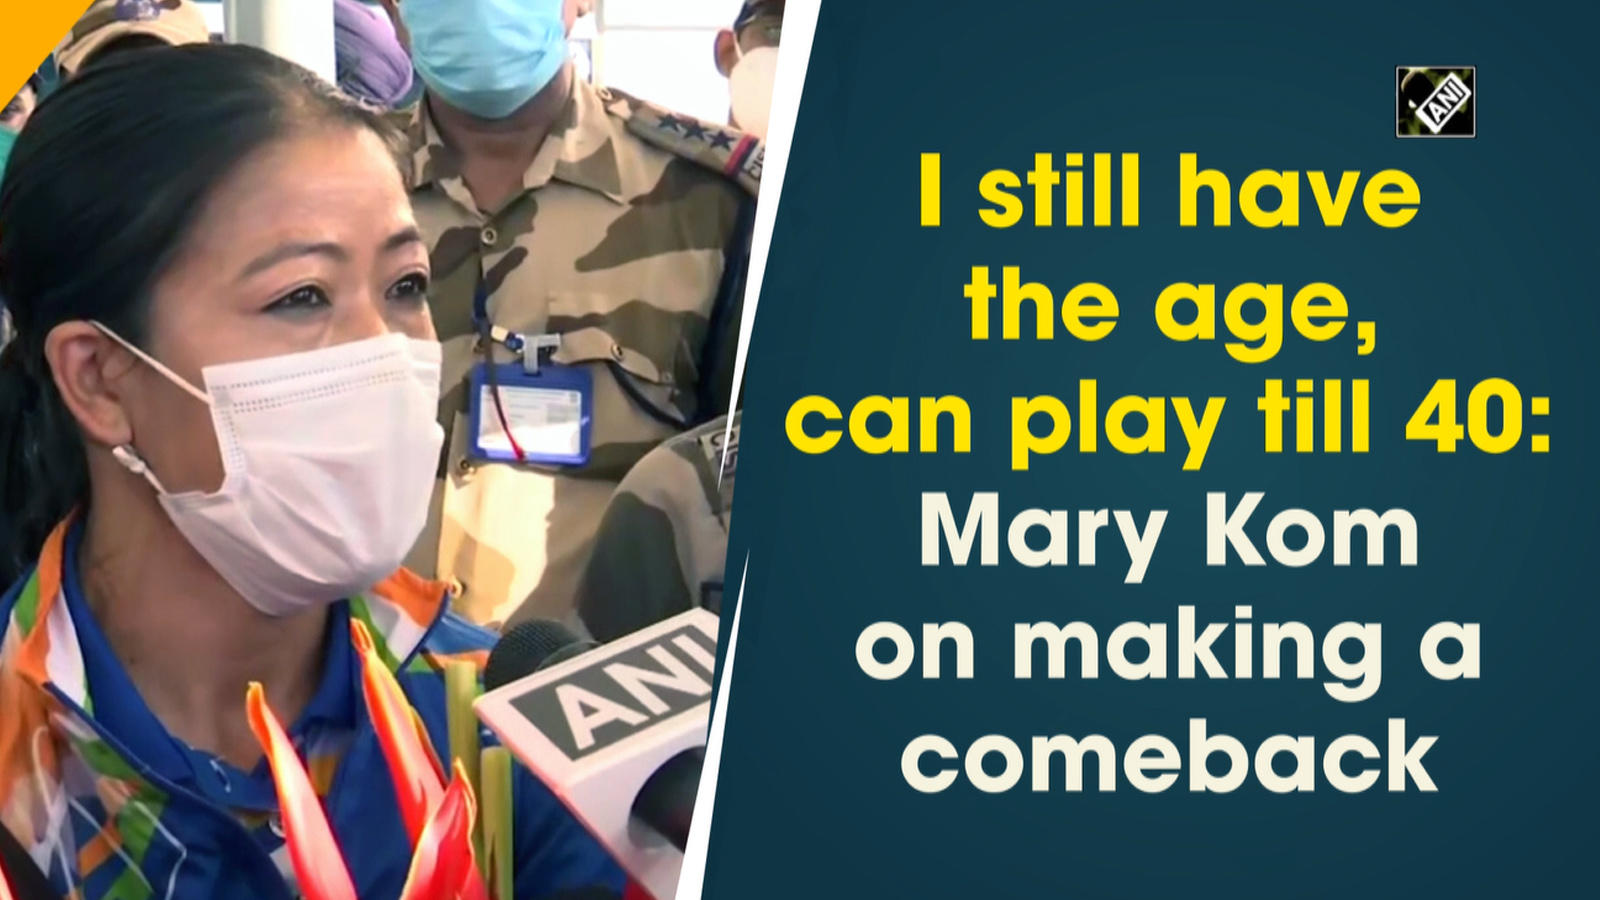 i-still-have-the-age-can-play-till-40-mary-kom-on-making-a-comeback